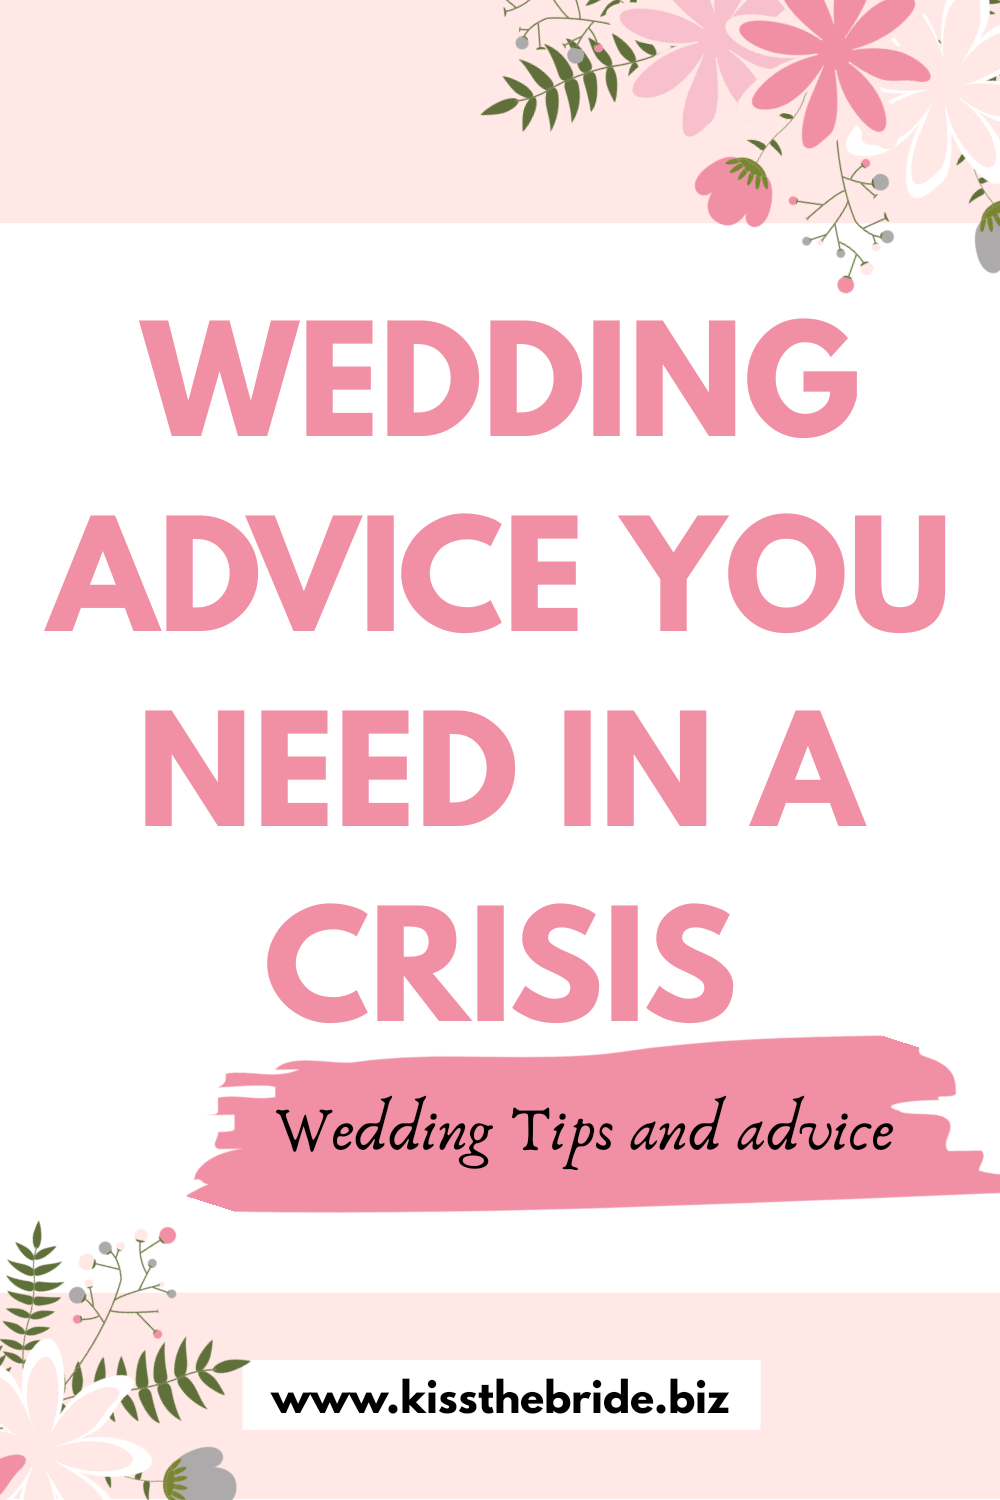 Wedding advice you need in a crisis